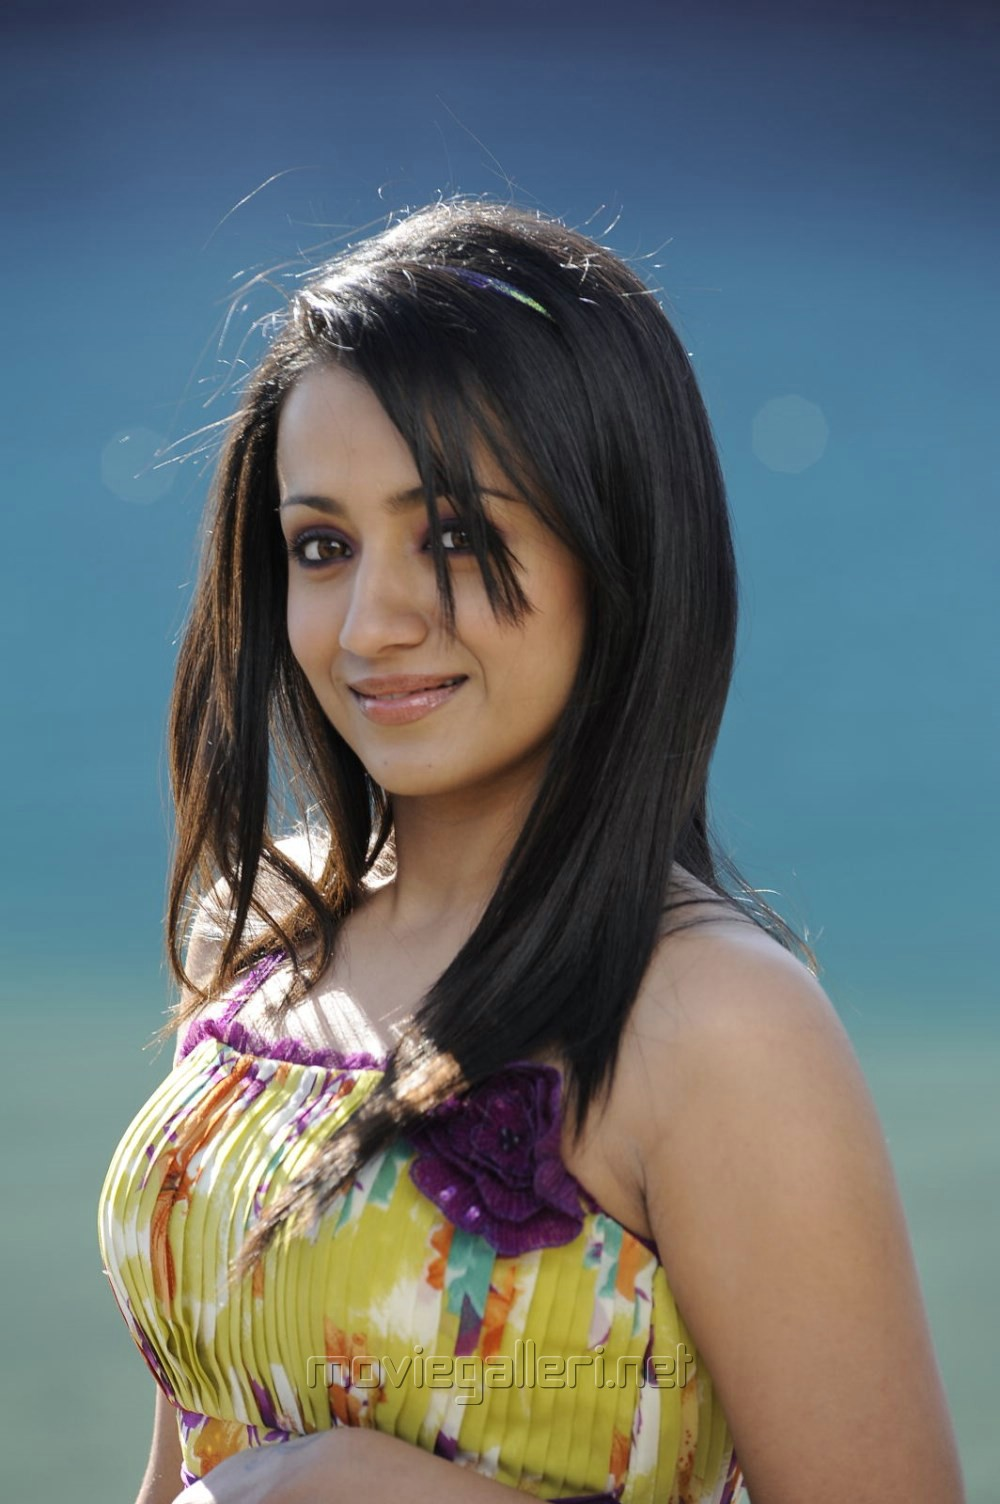 Charm City Cakes Trisha unseen hot photos